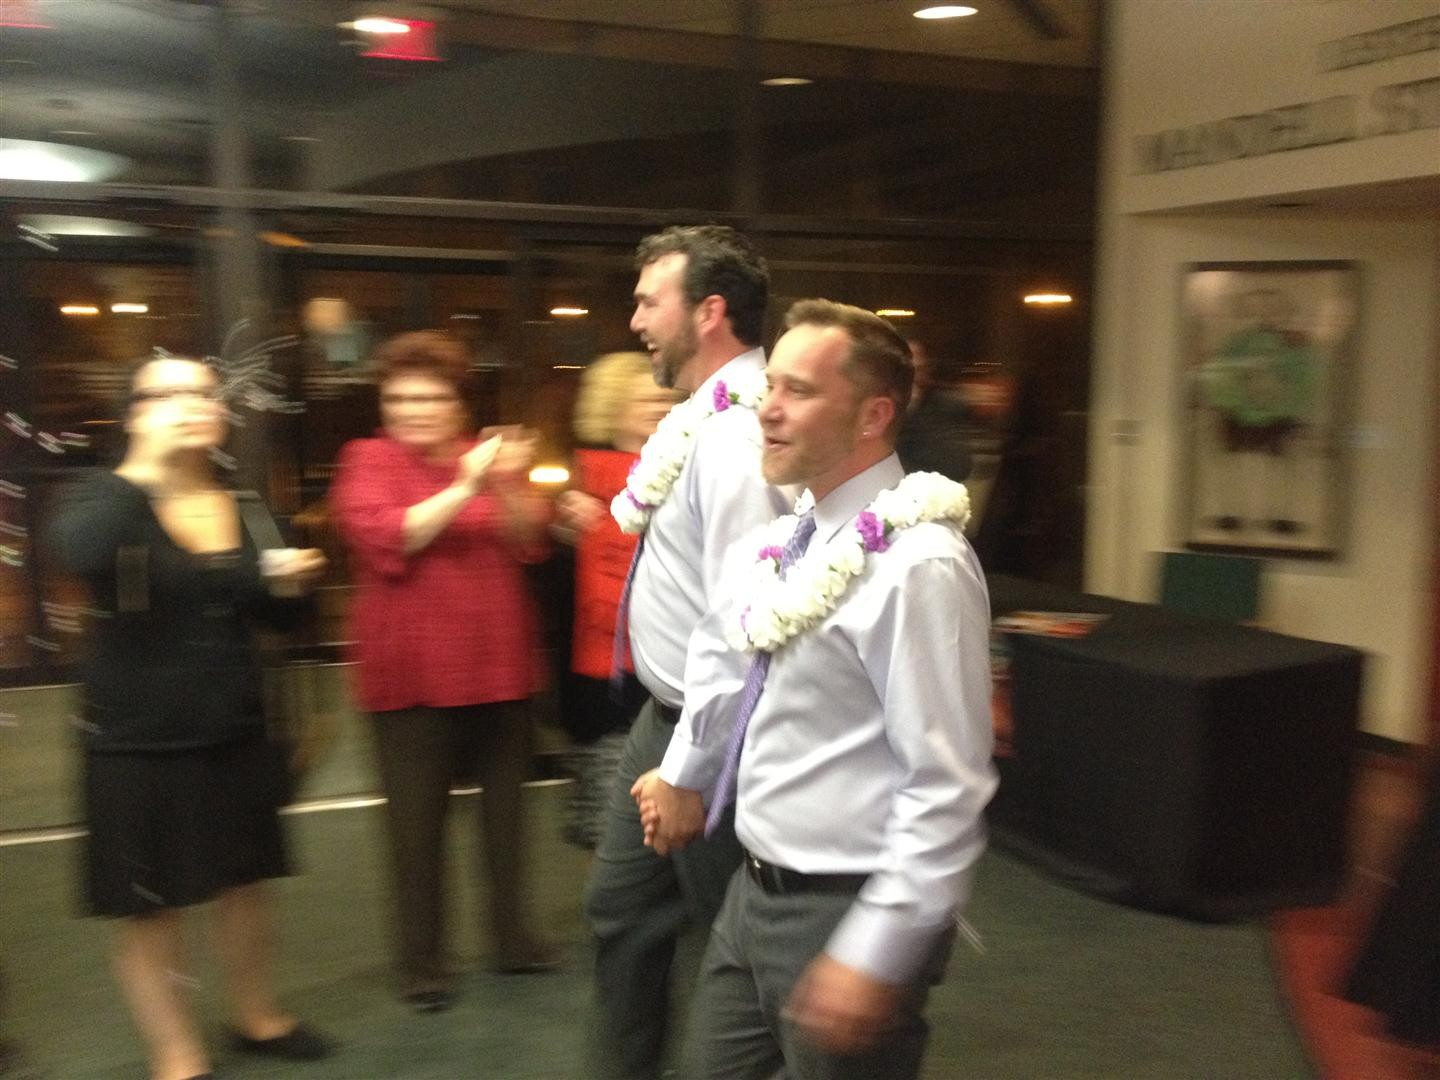 """Chad Lewis & Jason Donnelly emerge from the wedding following """"Prop 8 On Trial"""" at Orlando Shakes (2/11/12)"""